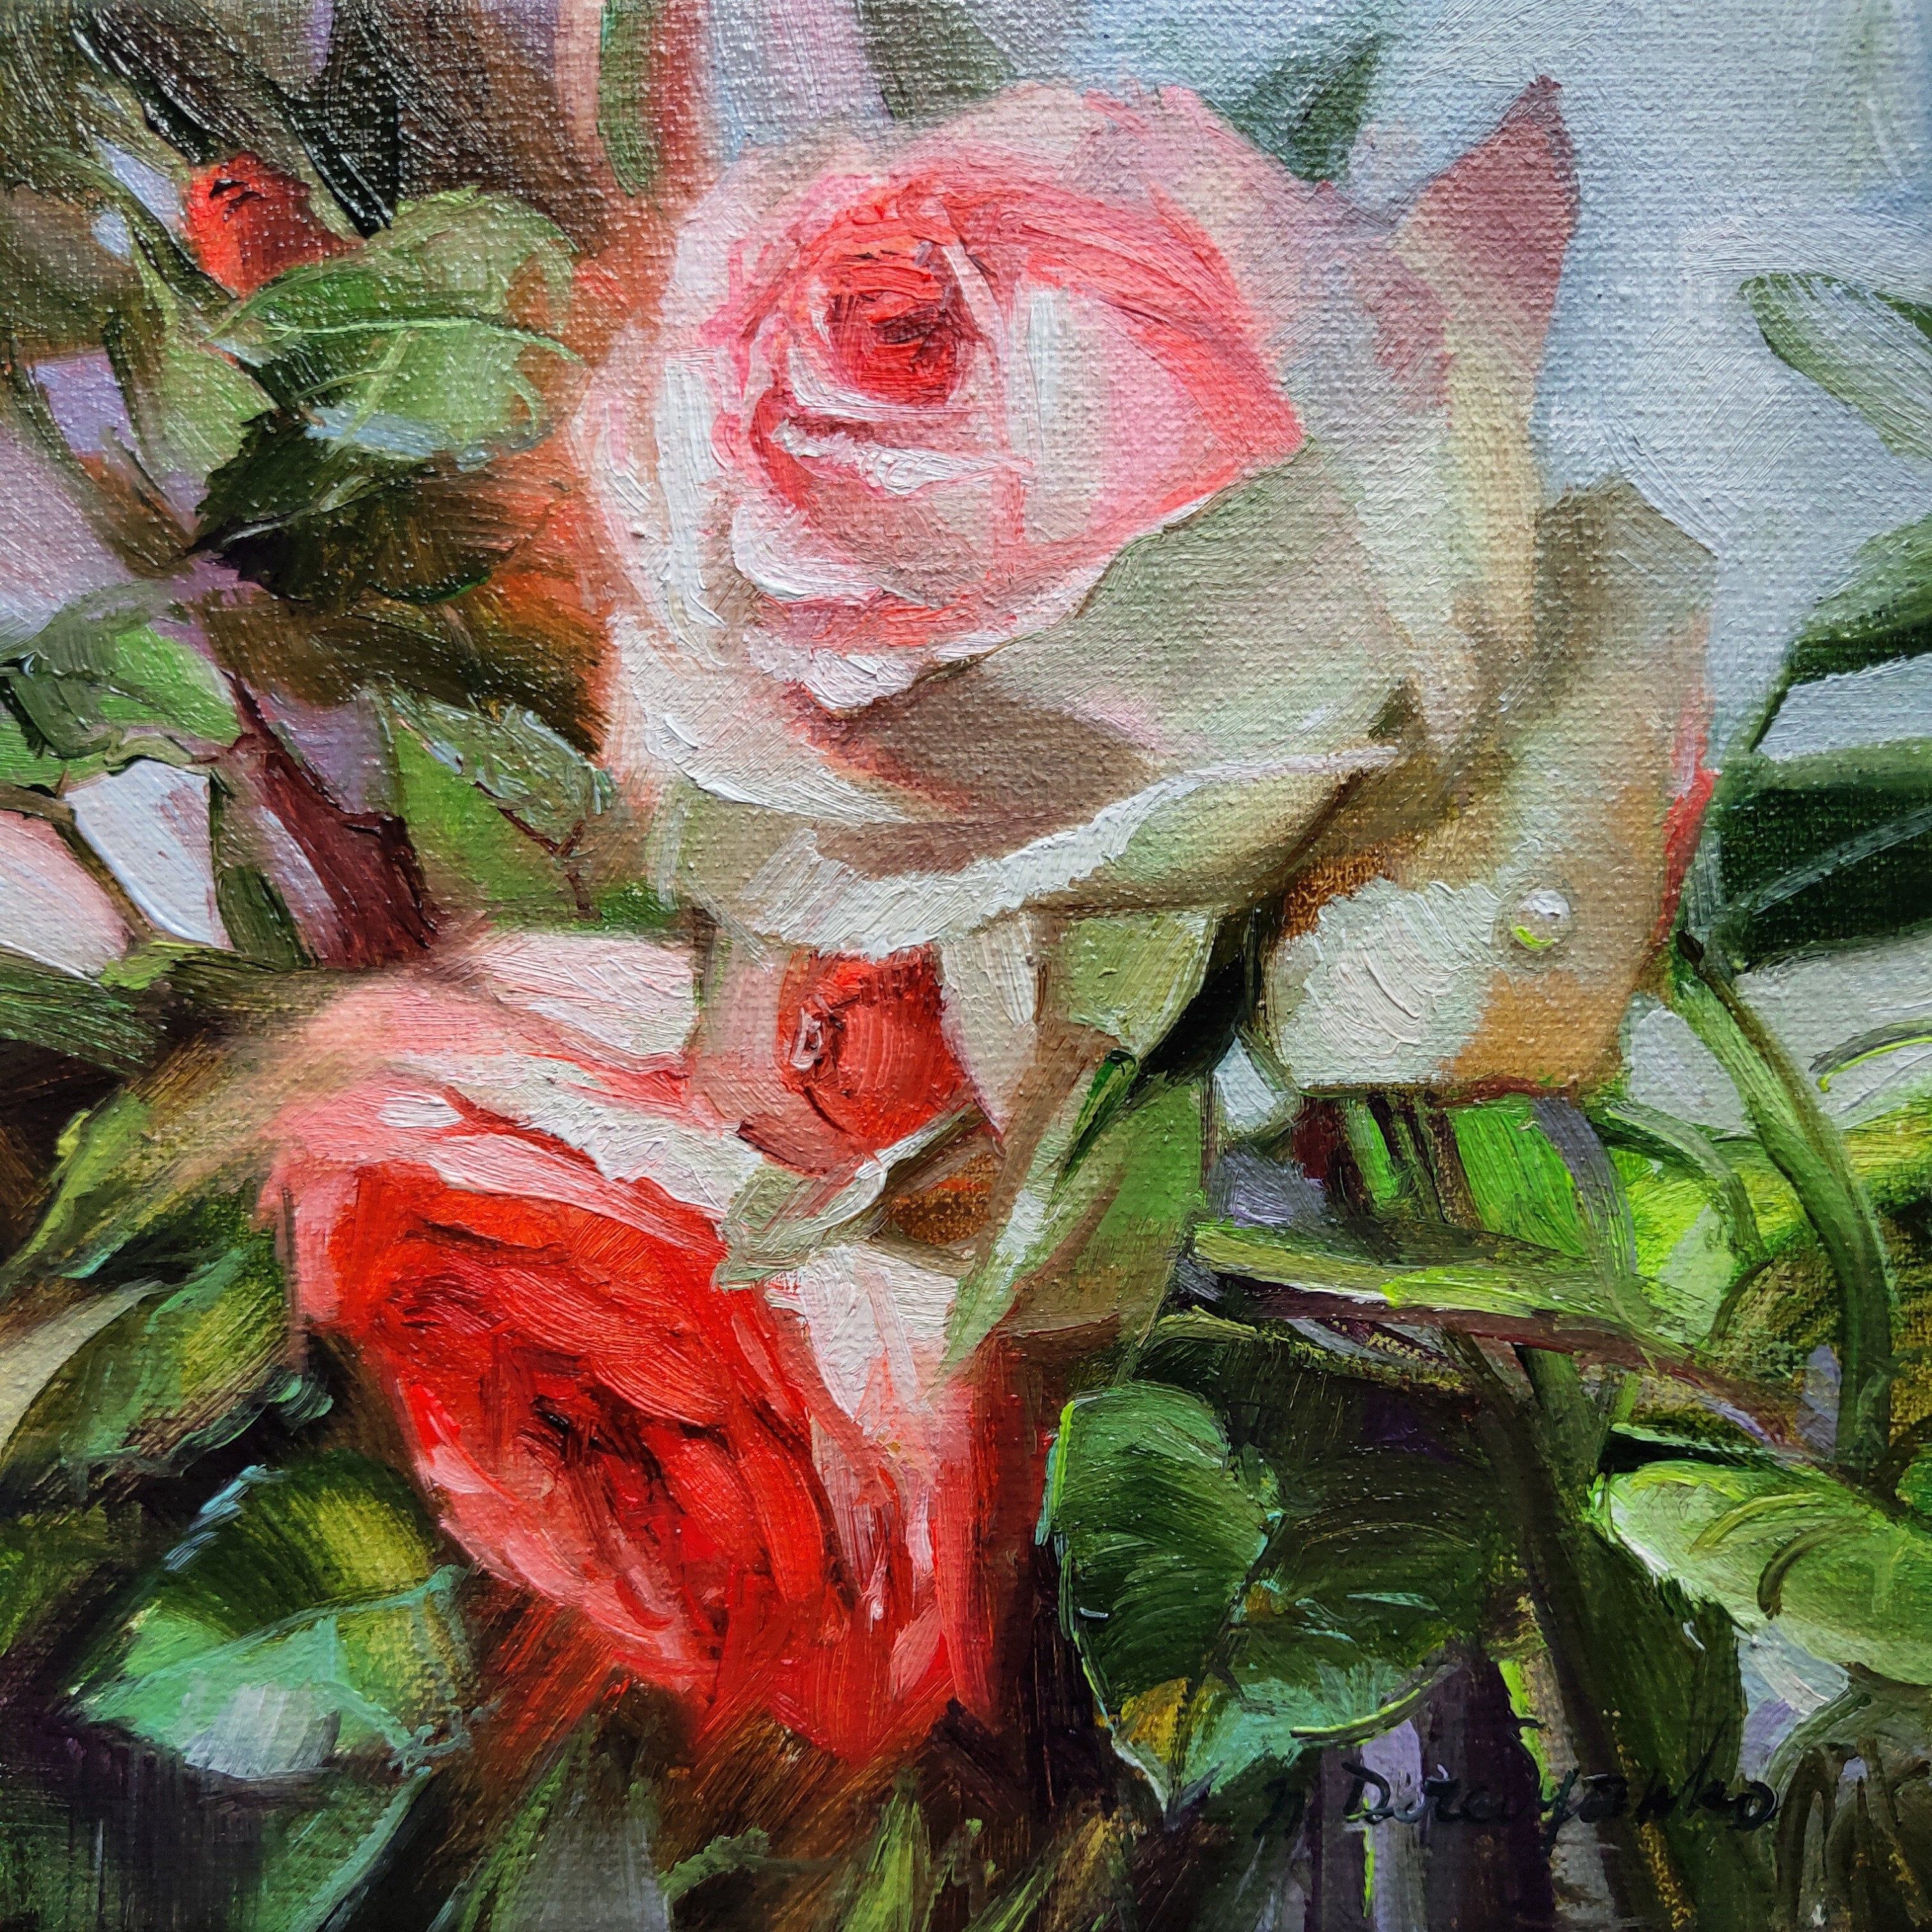 Roses Flowers Painting On Canvas Original Flower Rose Art In Etsy In 2020 Rose Art Painting The Roses Red Flower Canvas Art